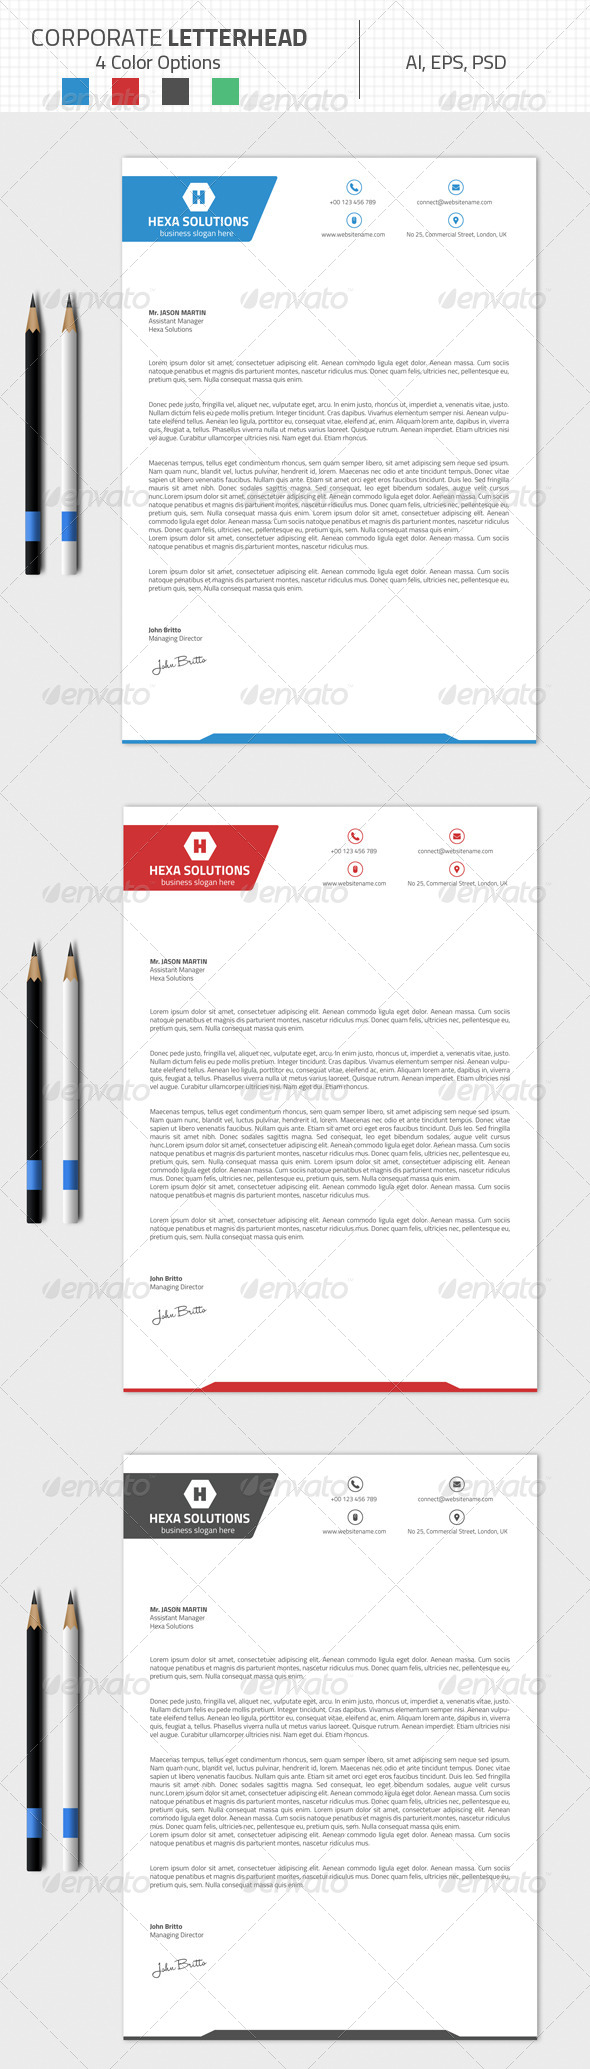 GraphicRiver Corporate Letterhead 03 8430606